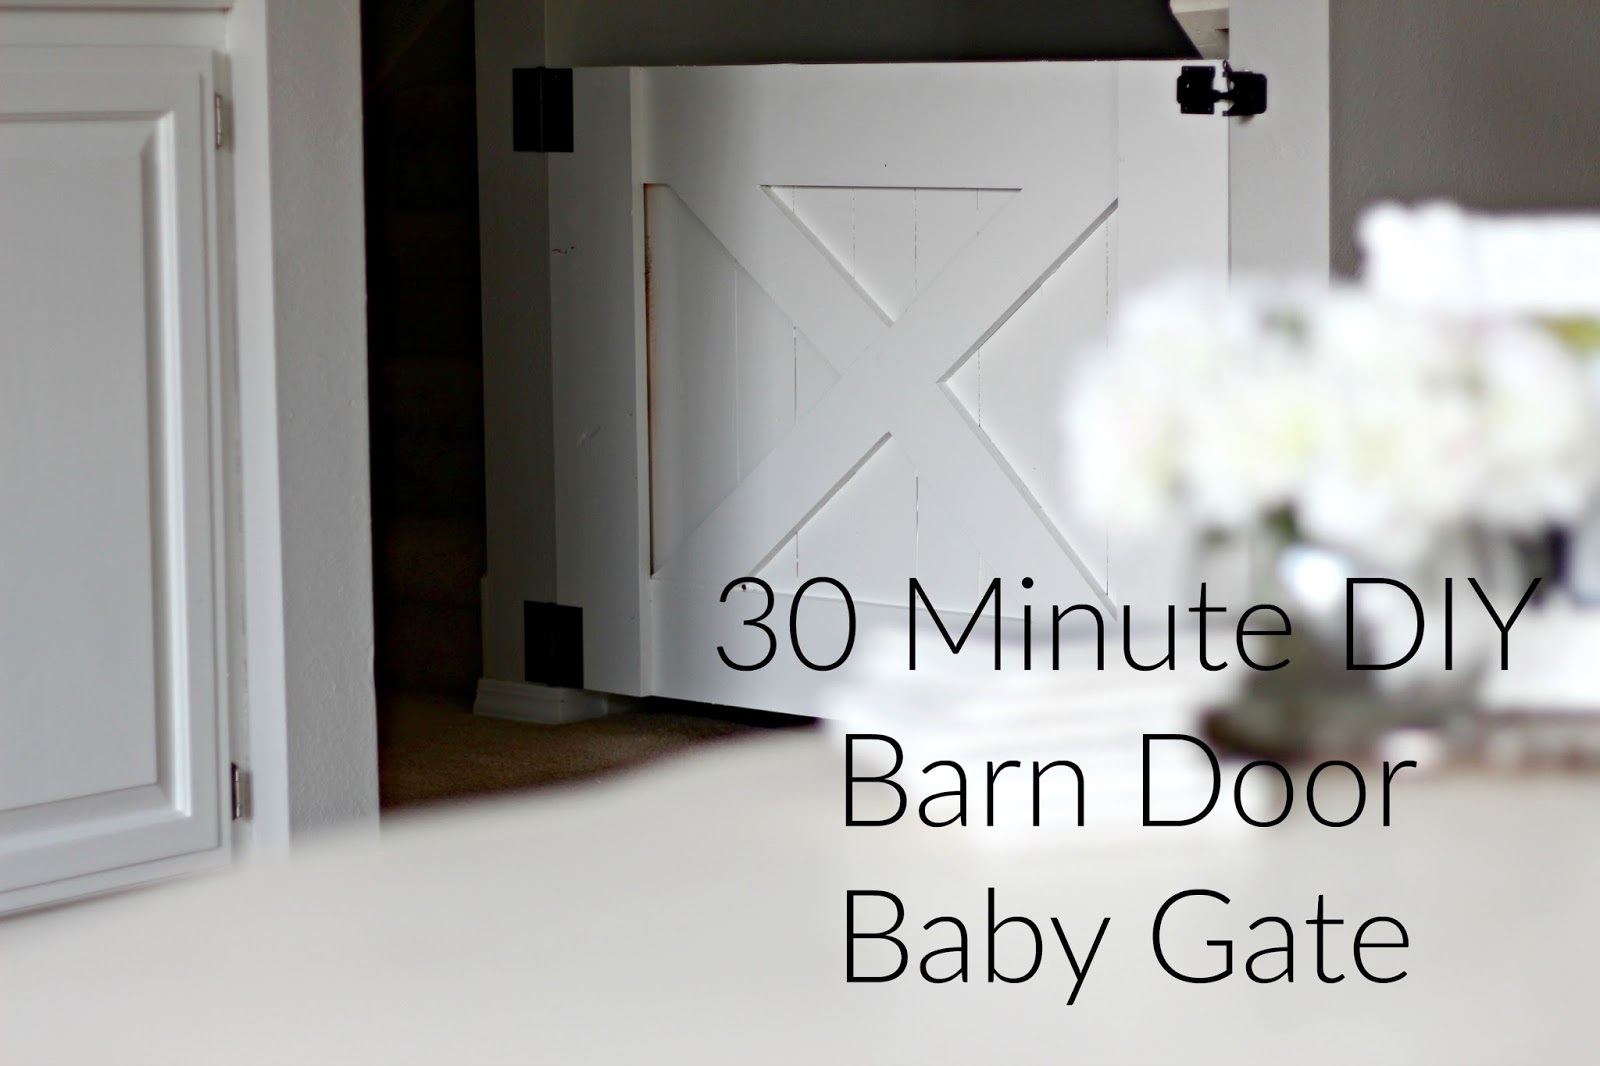 Rose Amp Co Blog 30 Minute Diy Barn Door Baby Gate